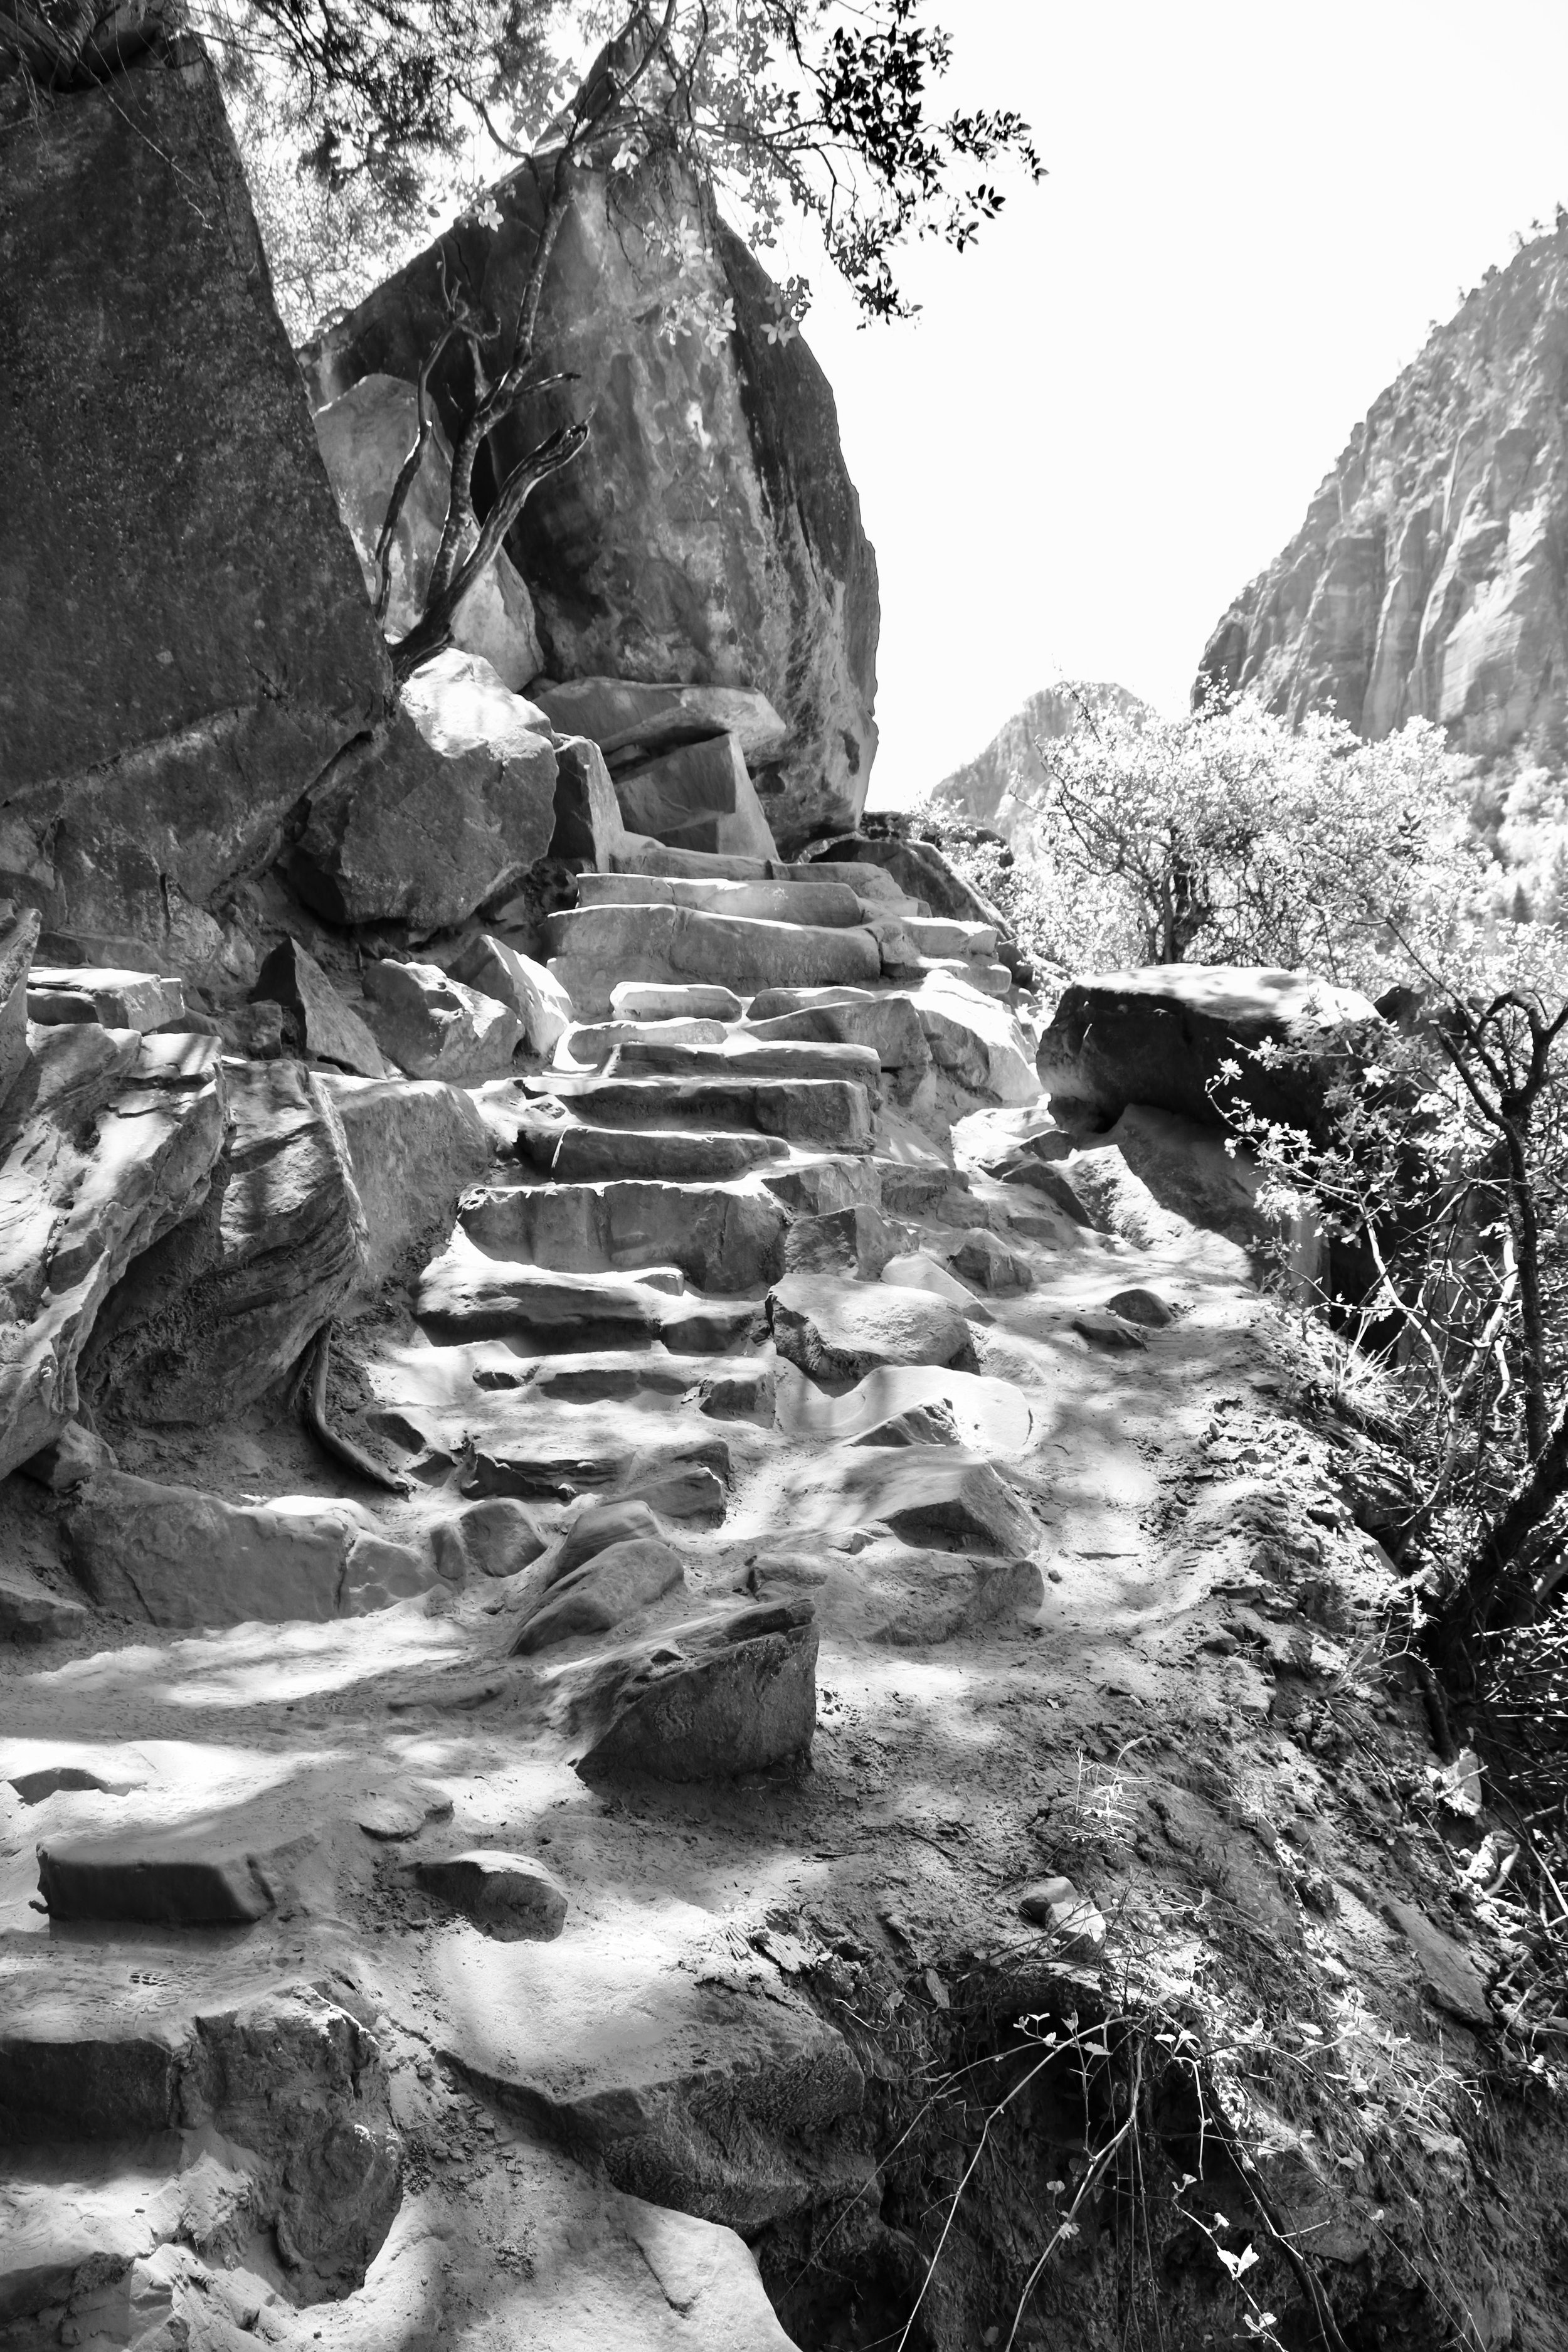 Stepping Stones to Emerald Pools - Zion